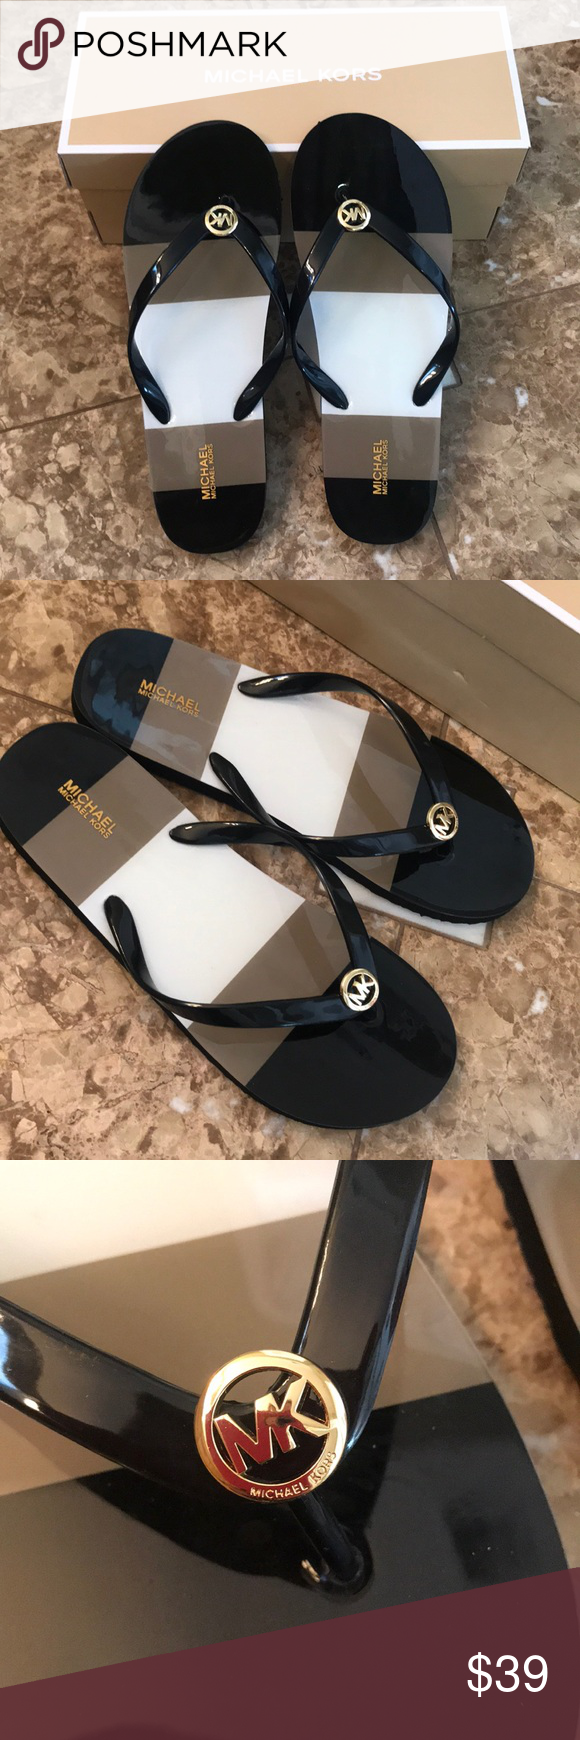 8c26b2f8d7bb80 NWB Michael Kors Shiny Flip Flops sz 10 BRAND NEW IN BOX Size 10 Black gold  ‼️PRICE AS LISTED THANK YOU‼ Michael Kors Shoes Sandals